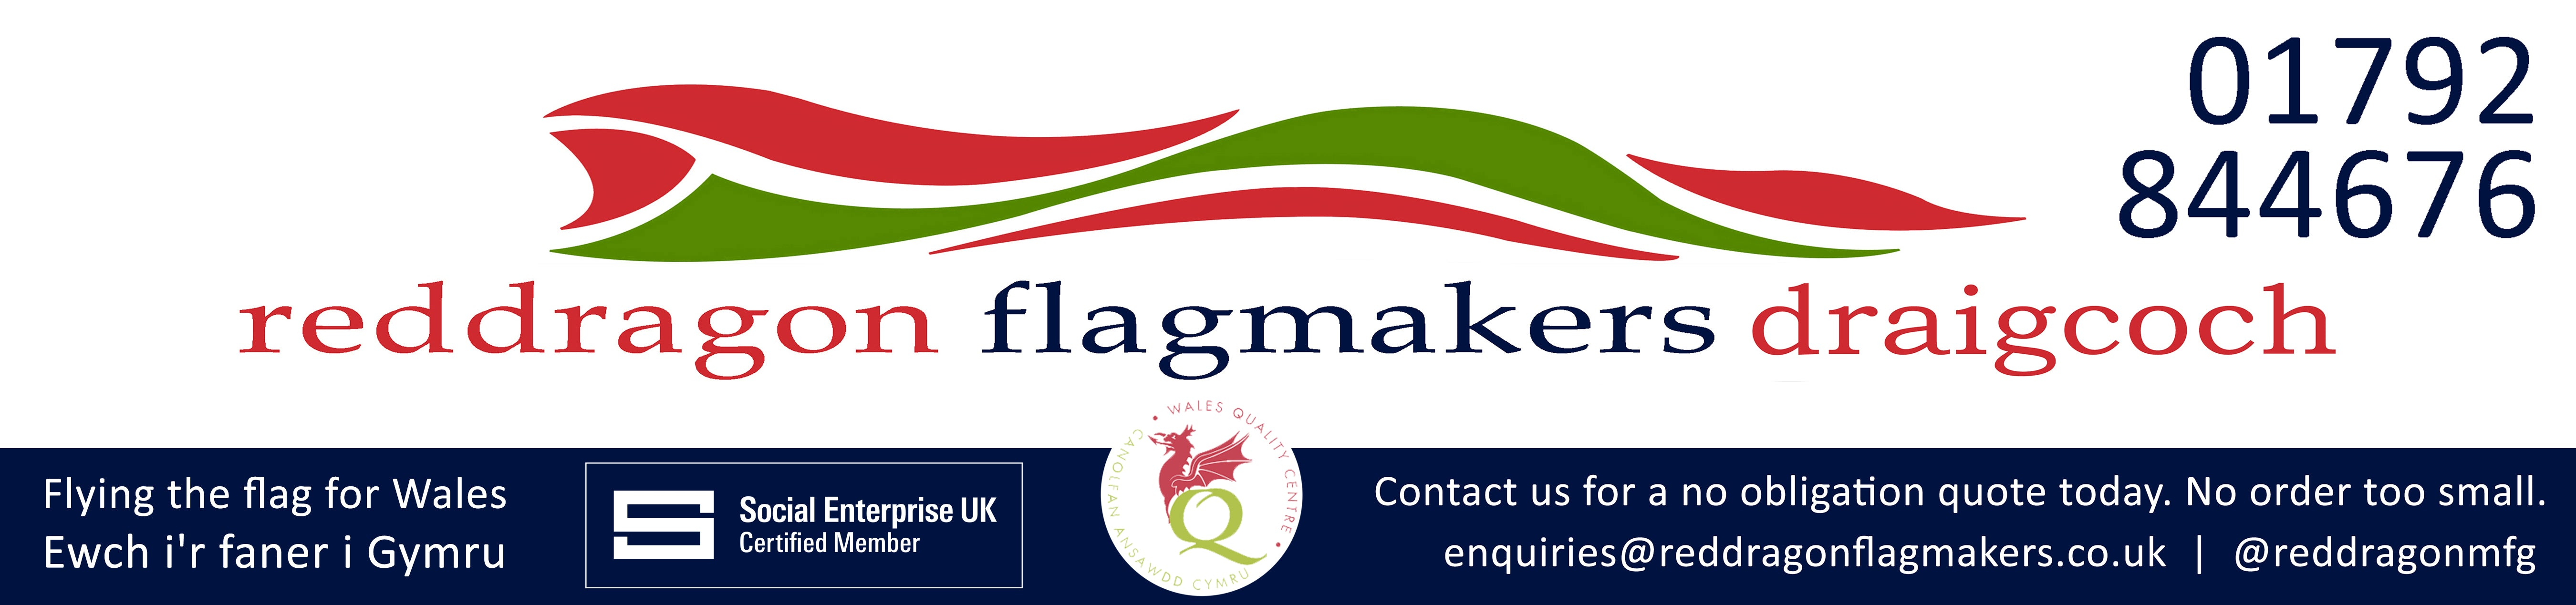 Red Dragon Flagmakers is an accredited member of the Wales Quality Centre